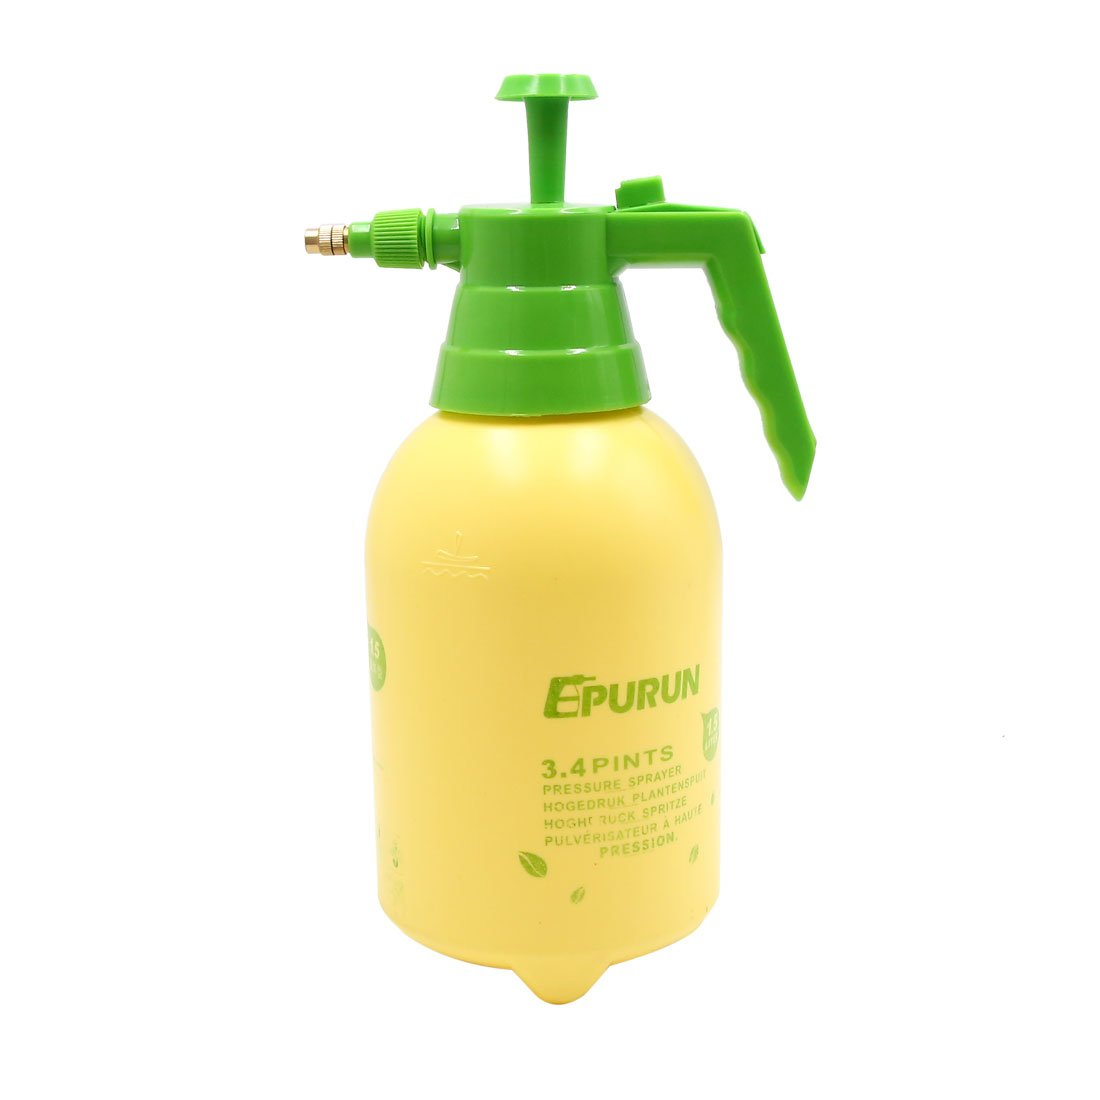 uxcell Plastic Yellow Car Trigger Spray Bottle Window Washing Cleaner Tool 1.5L by uxcell (Image #1)